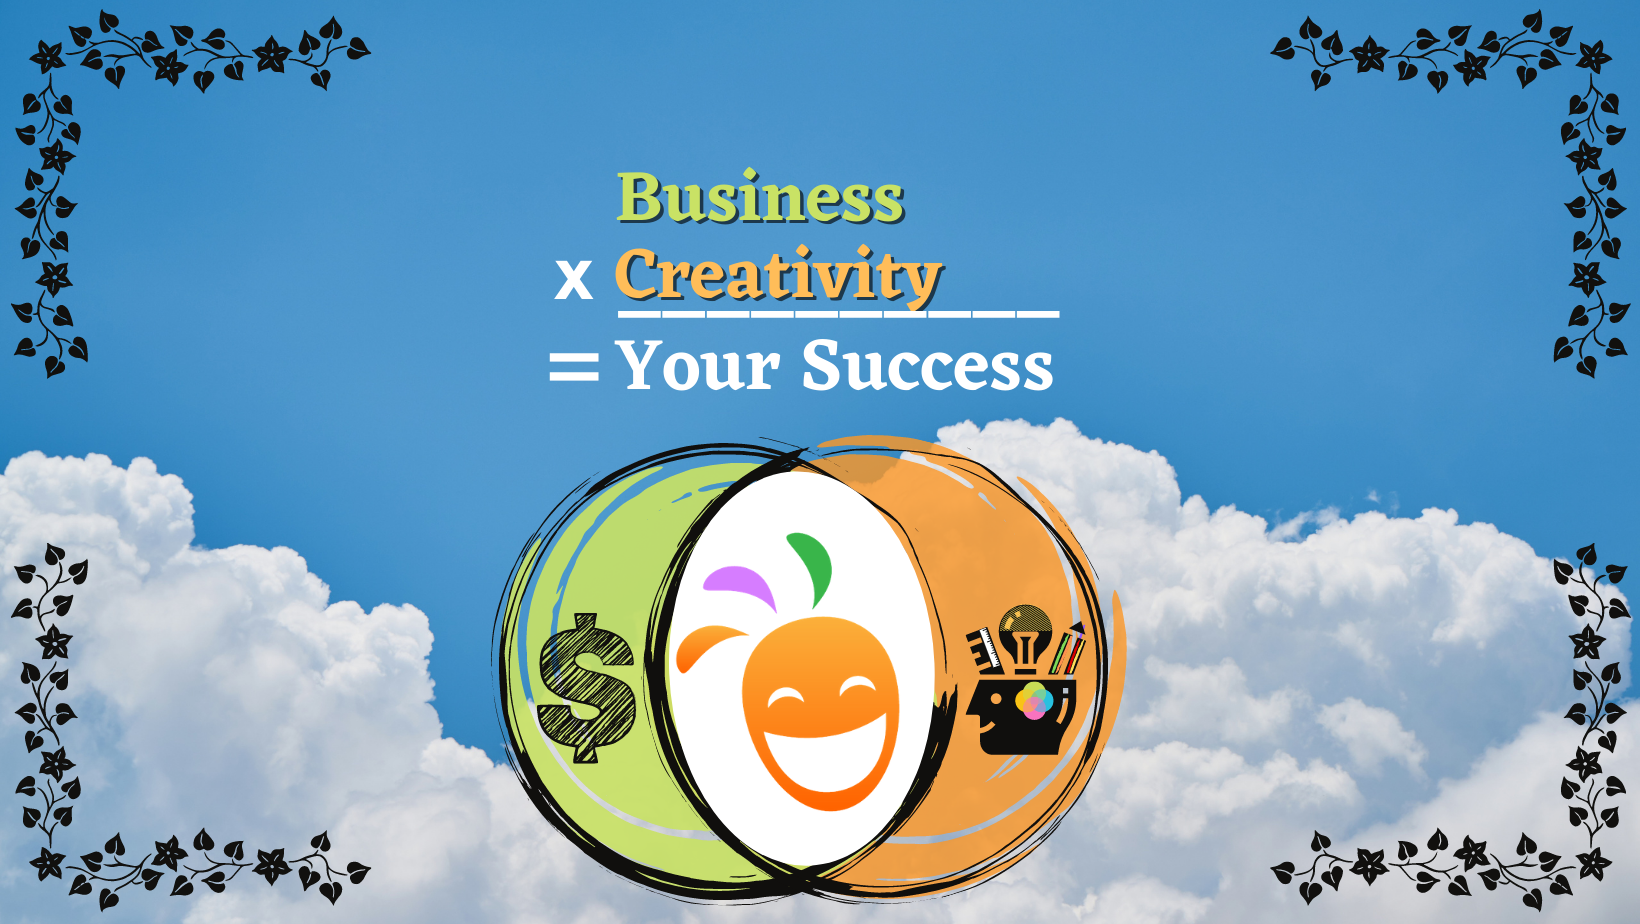 Creativity X Business = Your Success